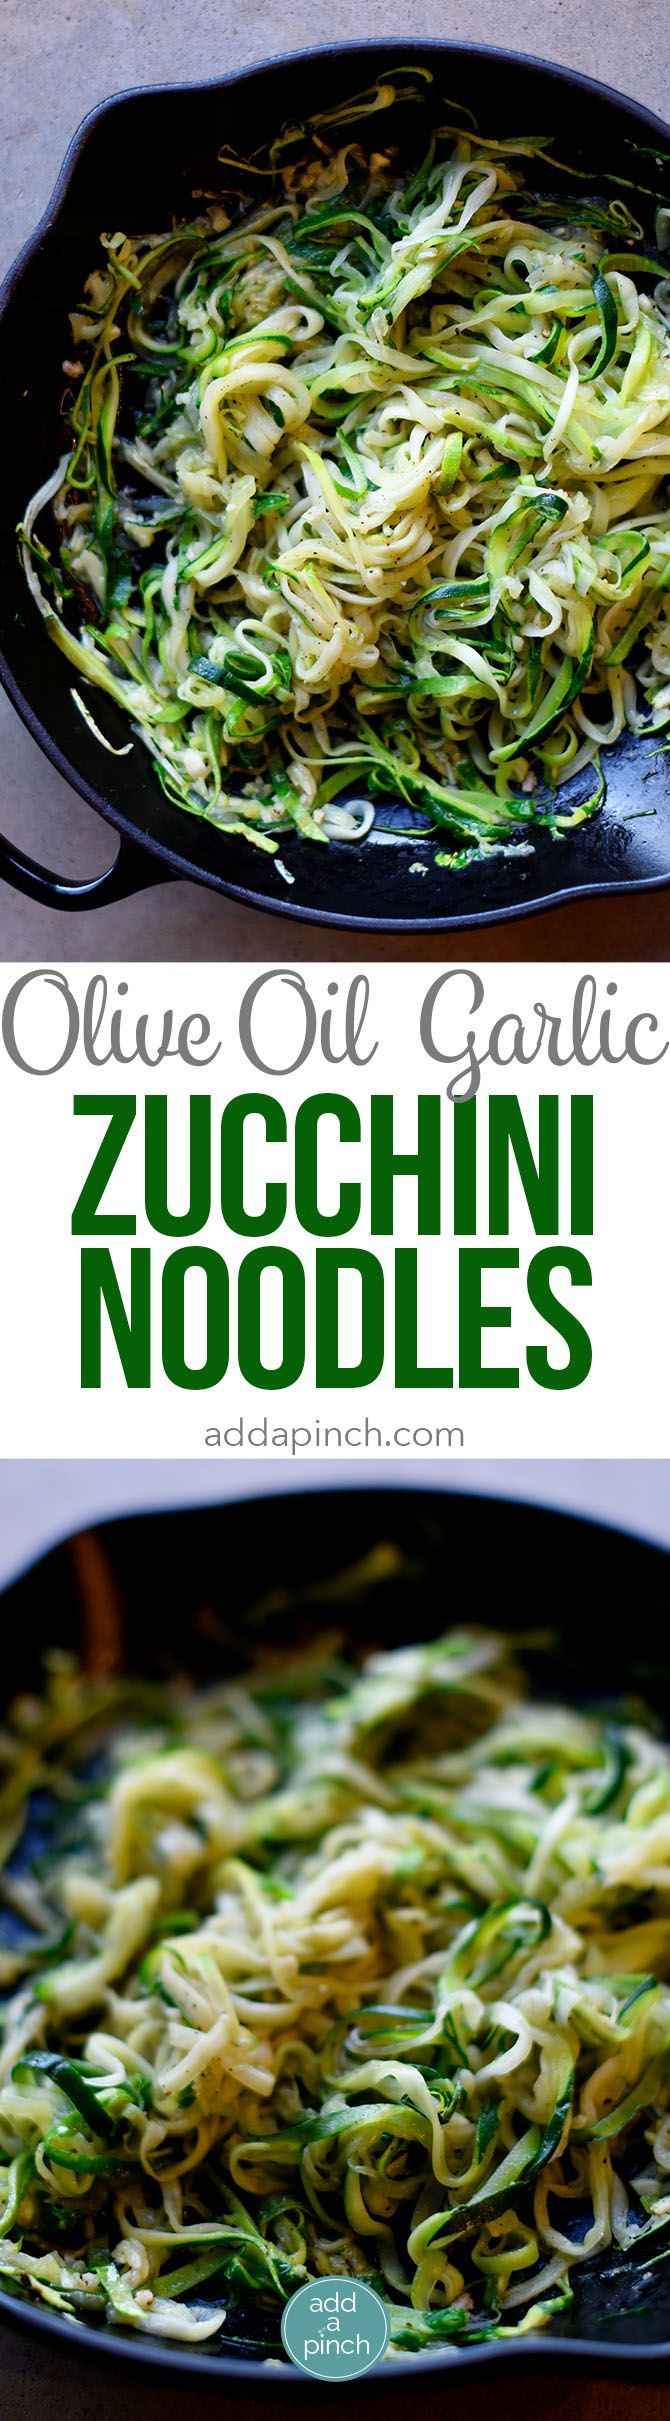 Olive Oil Garlic Zucchini Noodles Recipe - These Olive Oil Garlic Zucchini Noodles are fast and fabulous for a quick and easy way to incorporate more vegetables into your meals! Made with just a handful of ingredients and ready in minutes! // addapinch.com